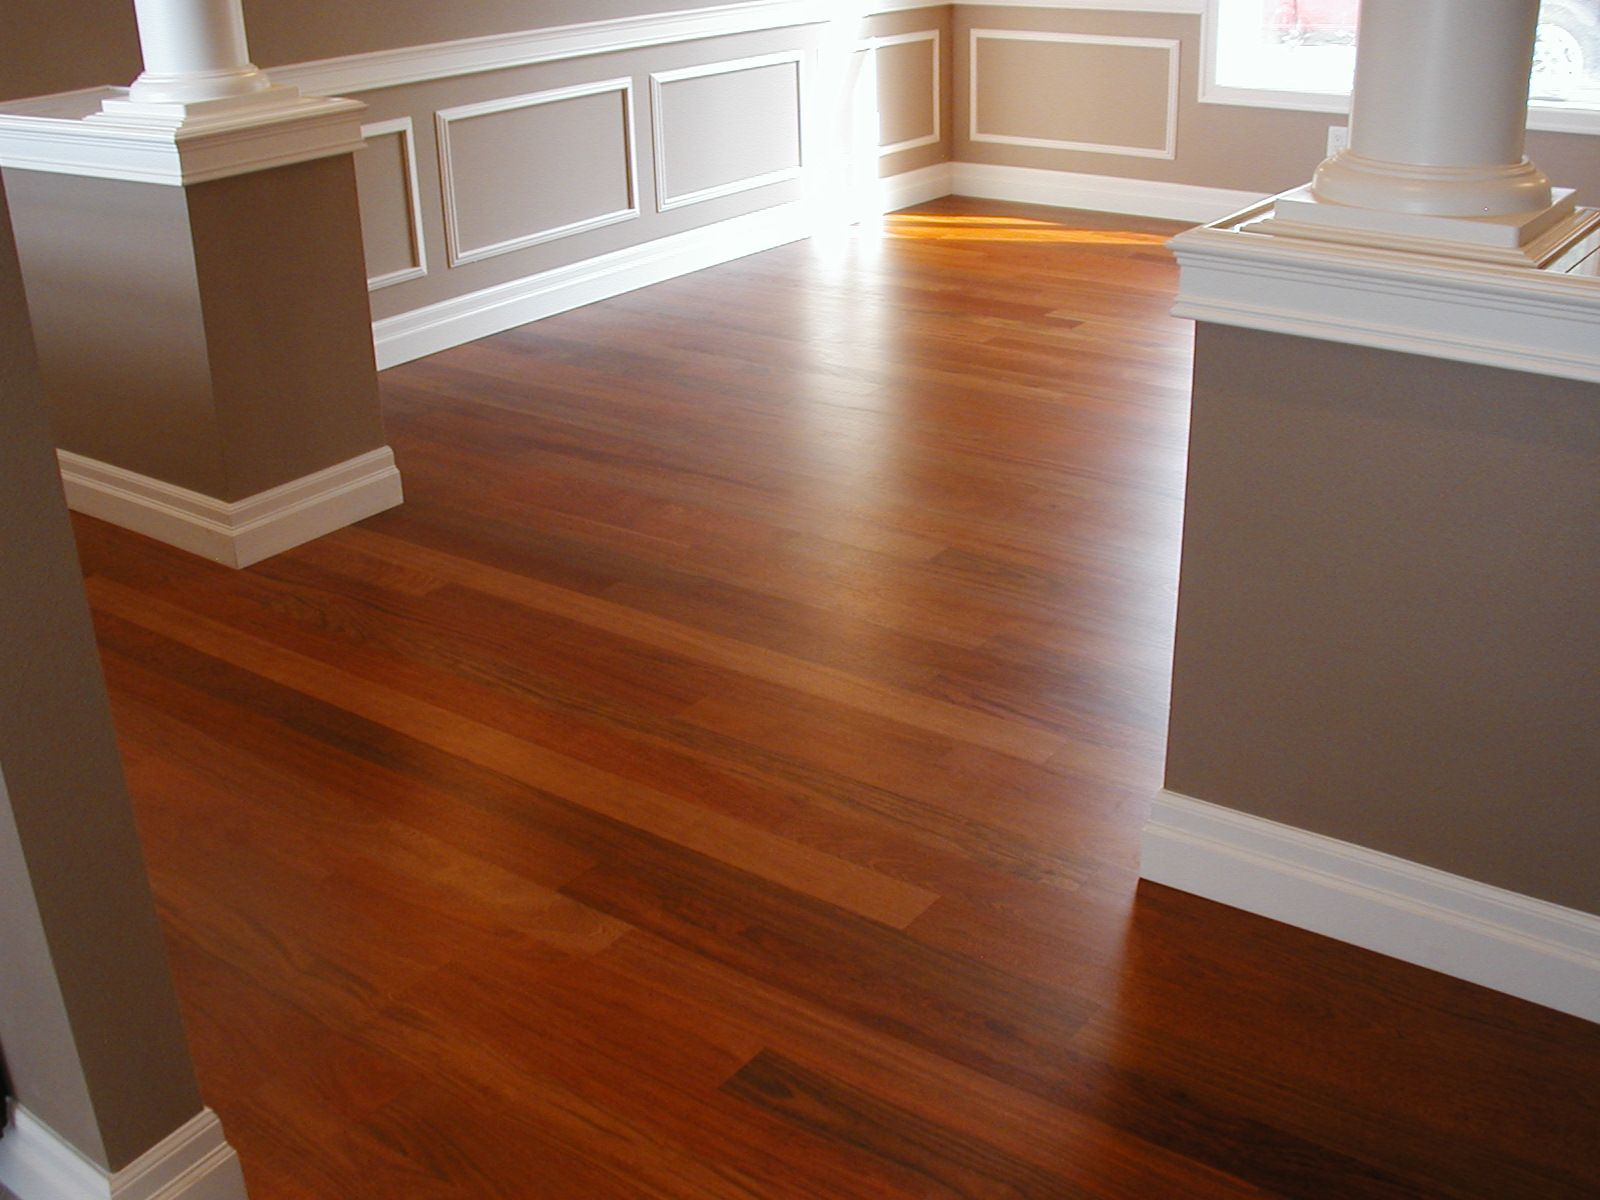 hardwood floor colors. Brazilian Cherry Floors In Kitchen | Help Choosing Harwood Floor Color (laminate, Hardwood, Cabinet, Colors . Hardwood